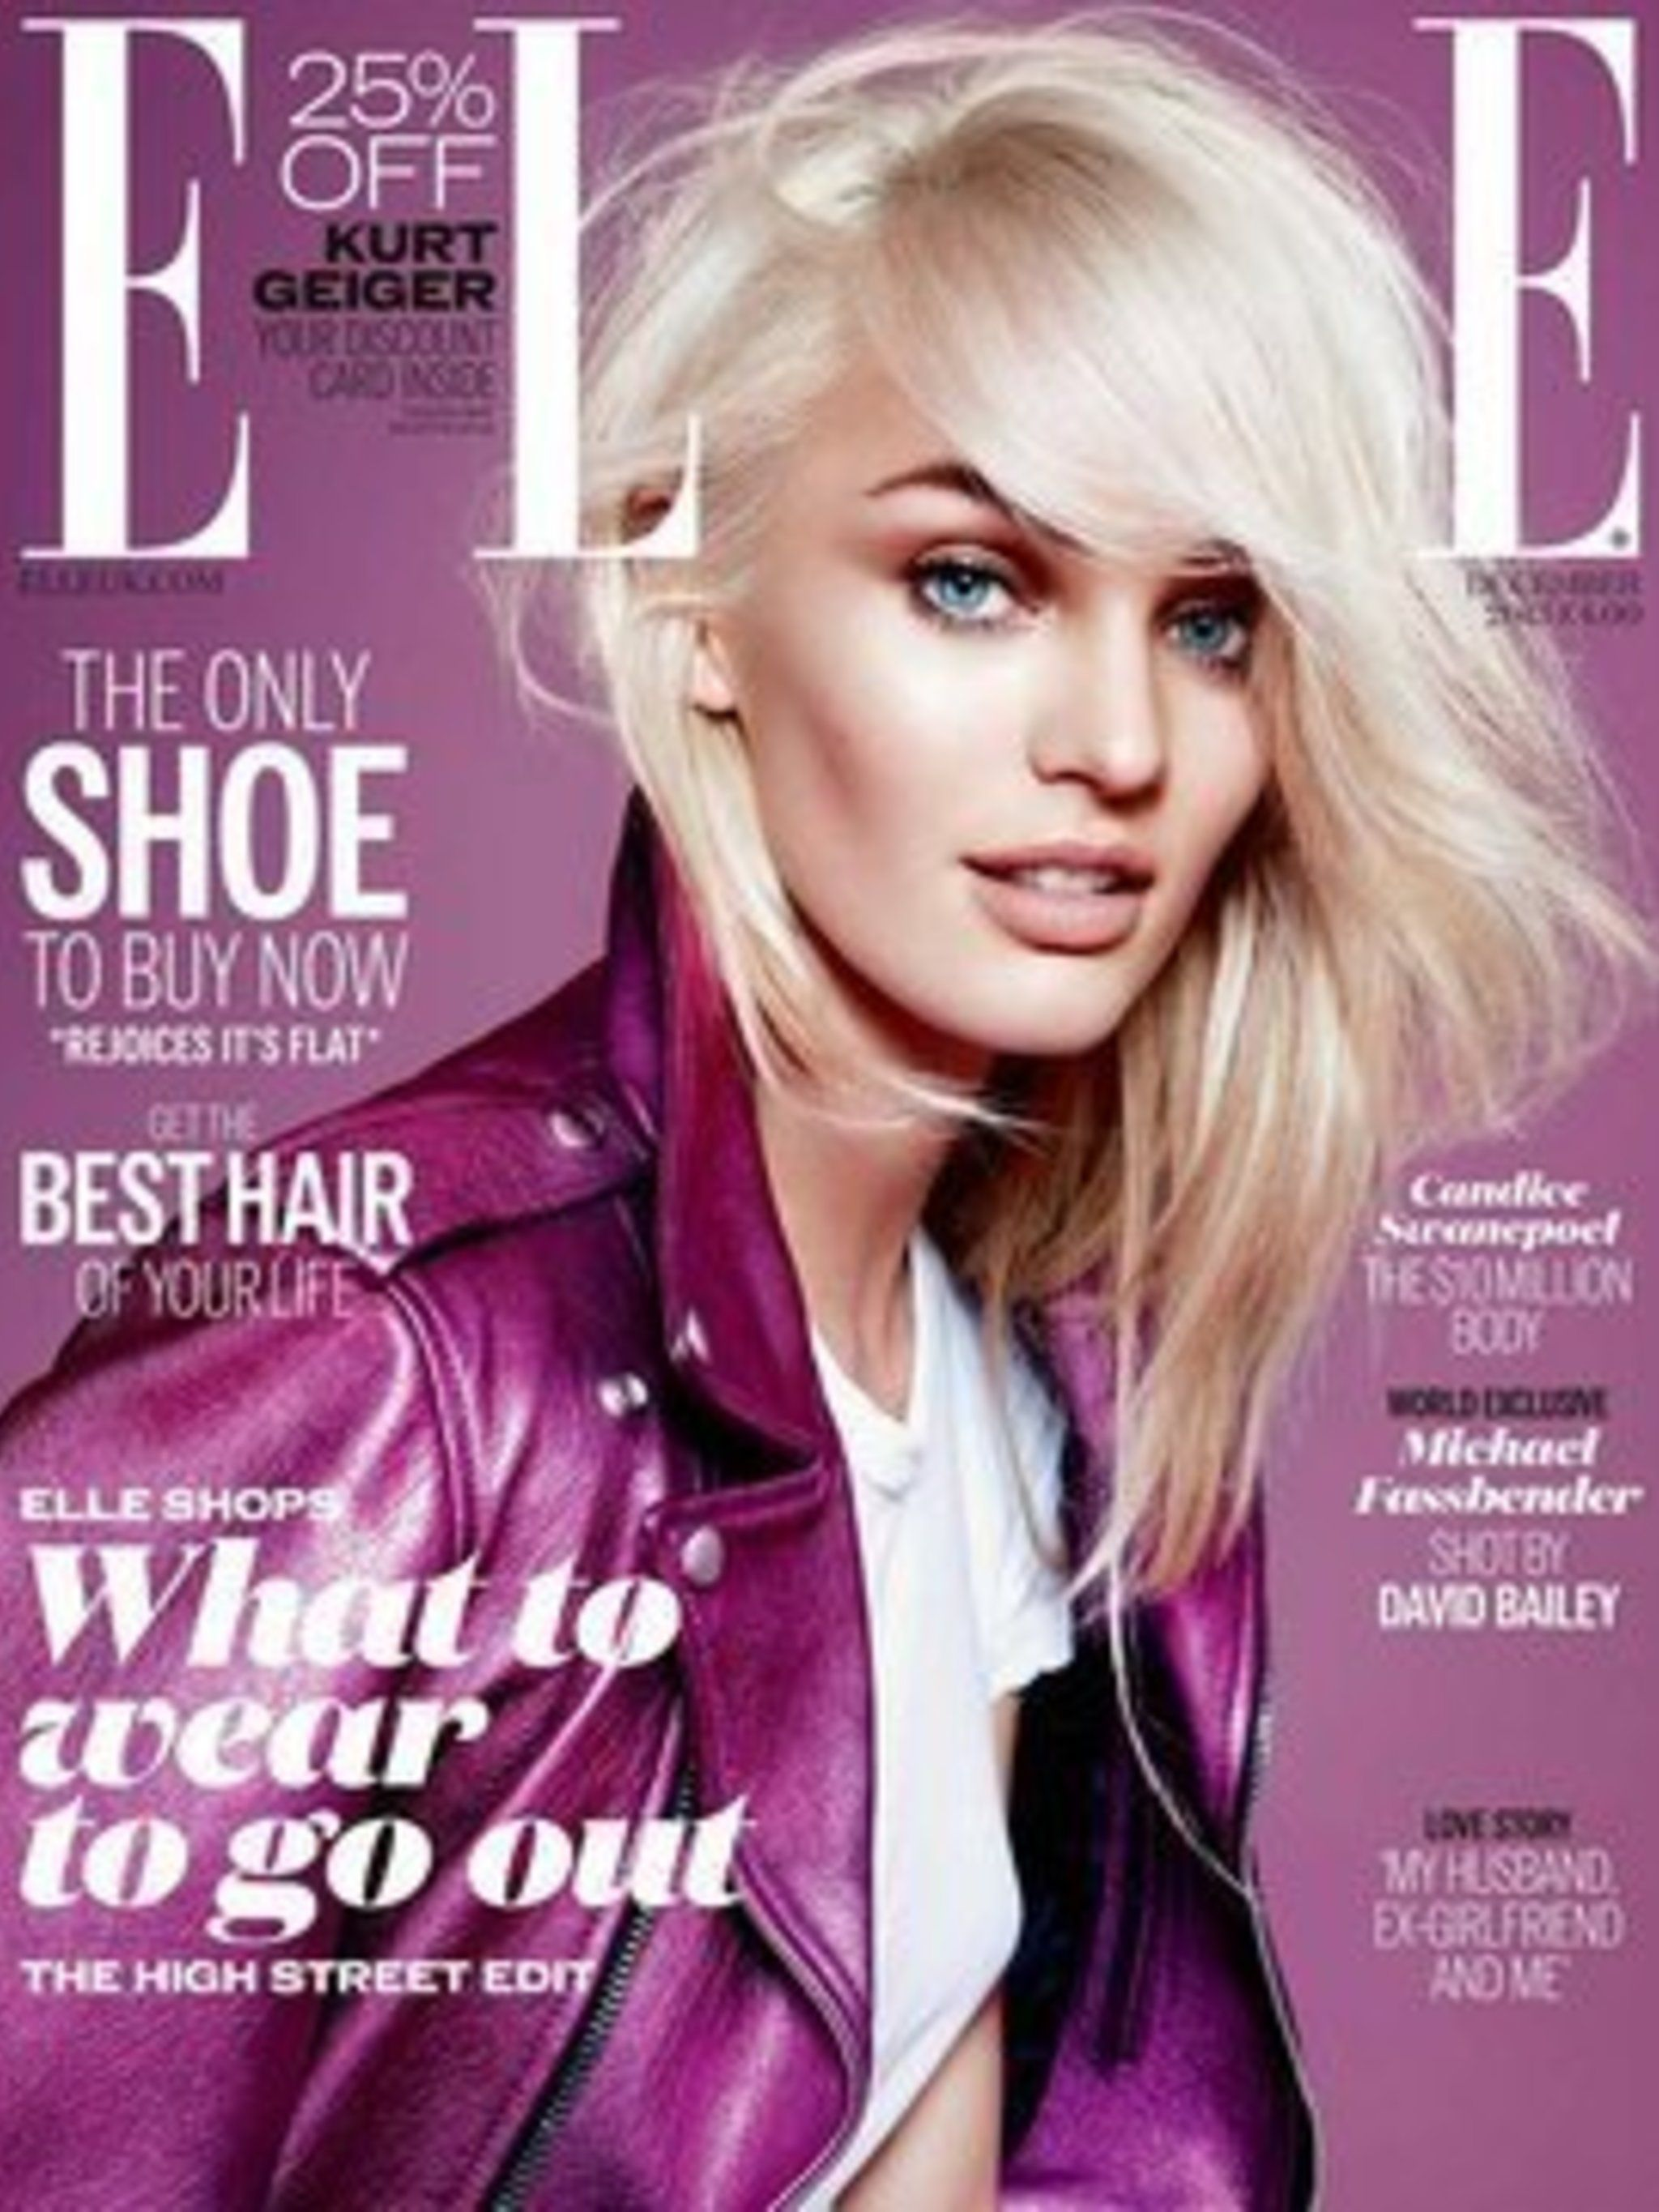 <p>Candice Swanepoel in Saint Laurent by Kai Z Feng</p>